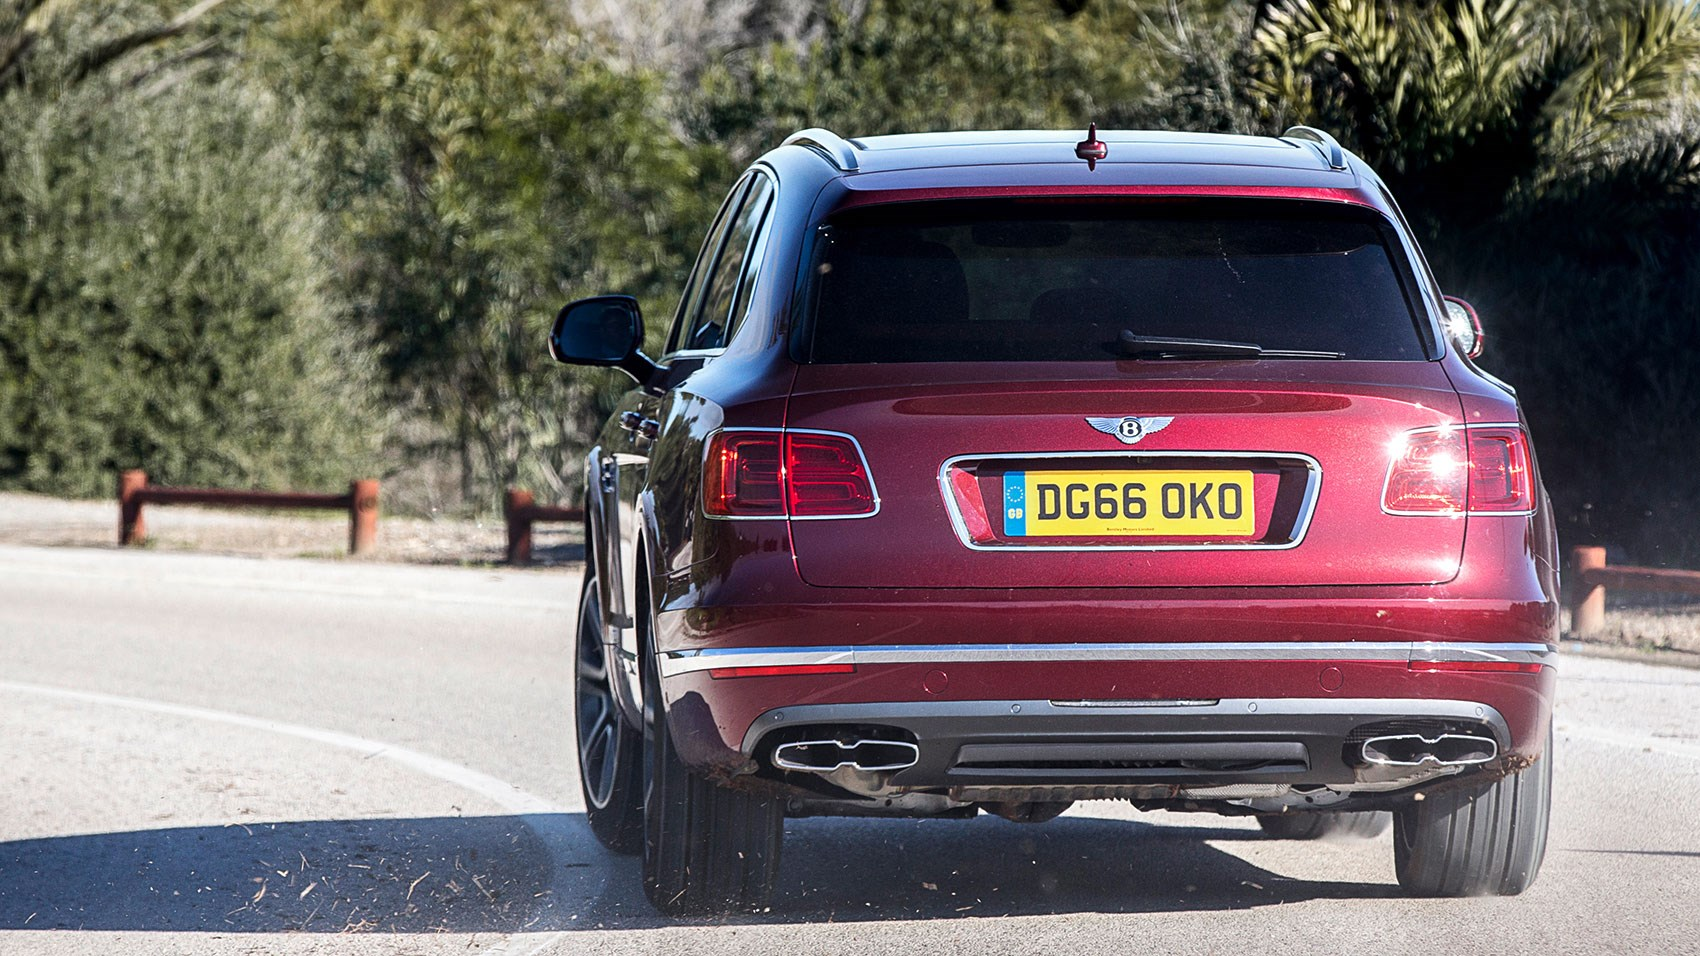 bentley bentayga diesel 2018 review five days with the luxury suv by car magazine. Black Bedroom Furniture Sets. Home Design Ideas